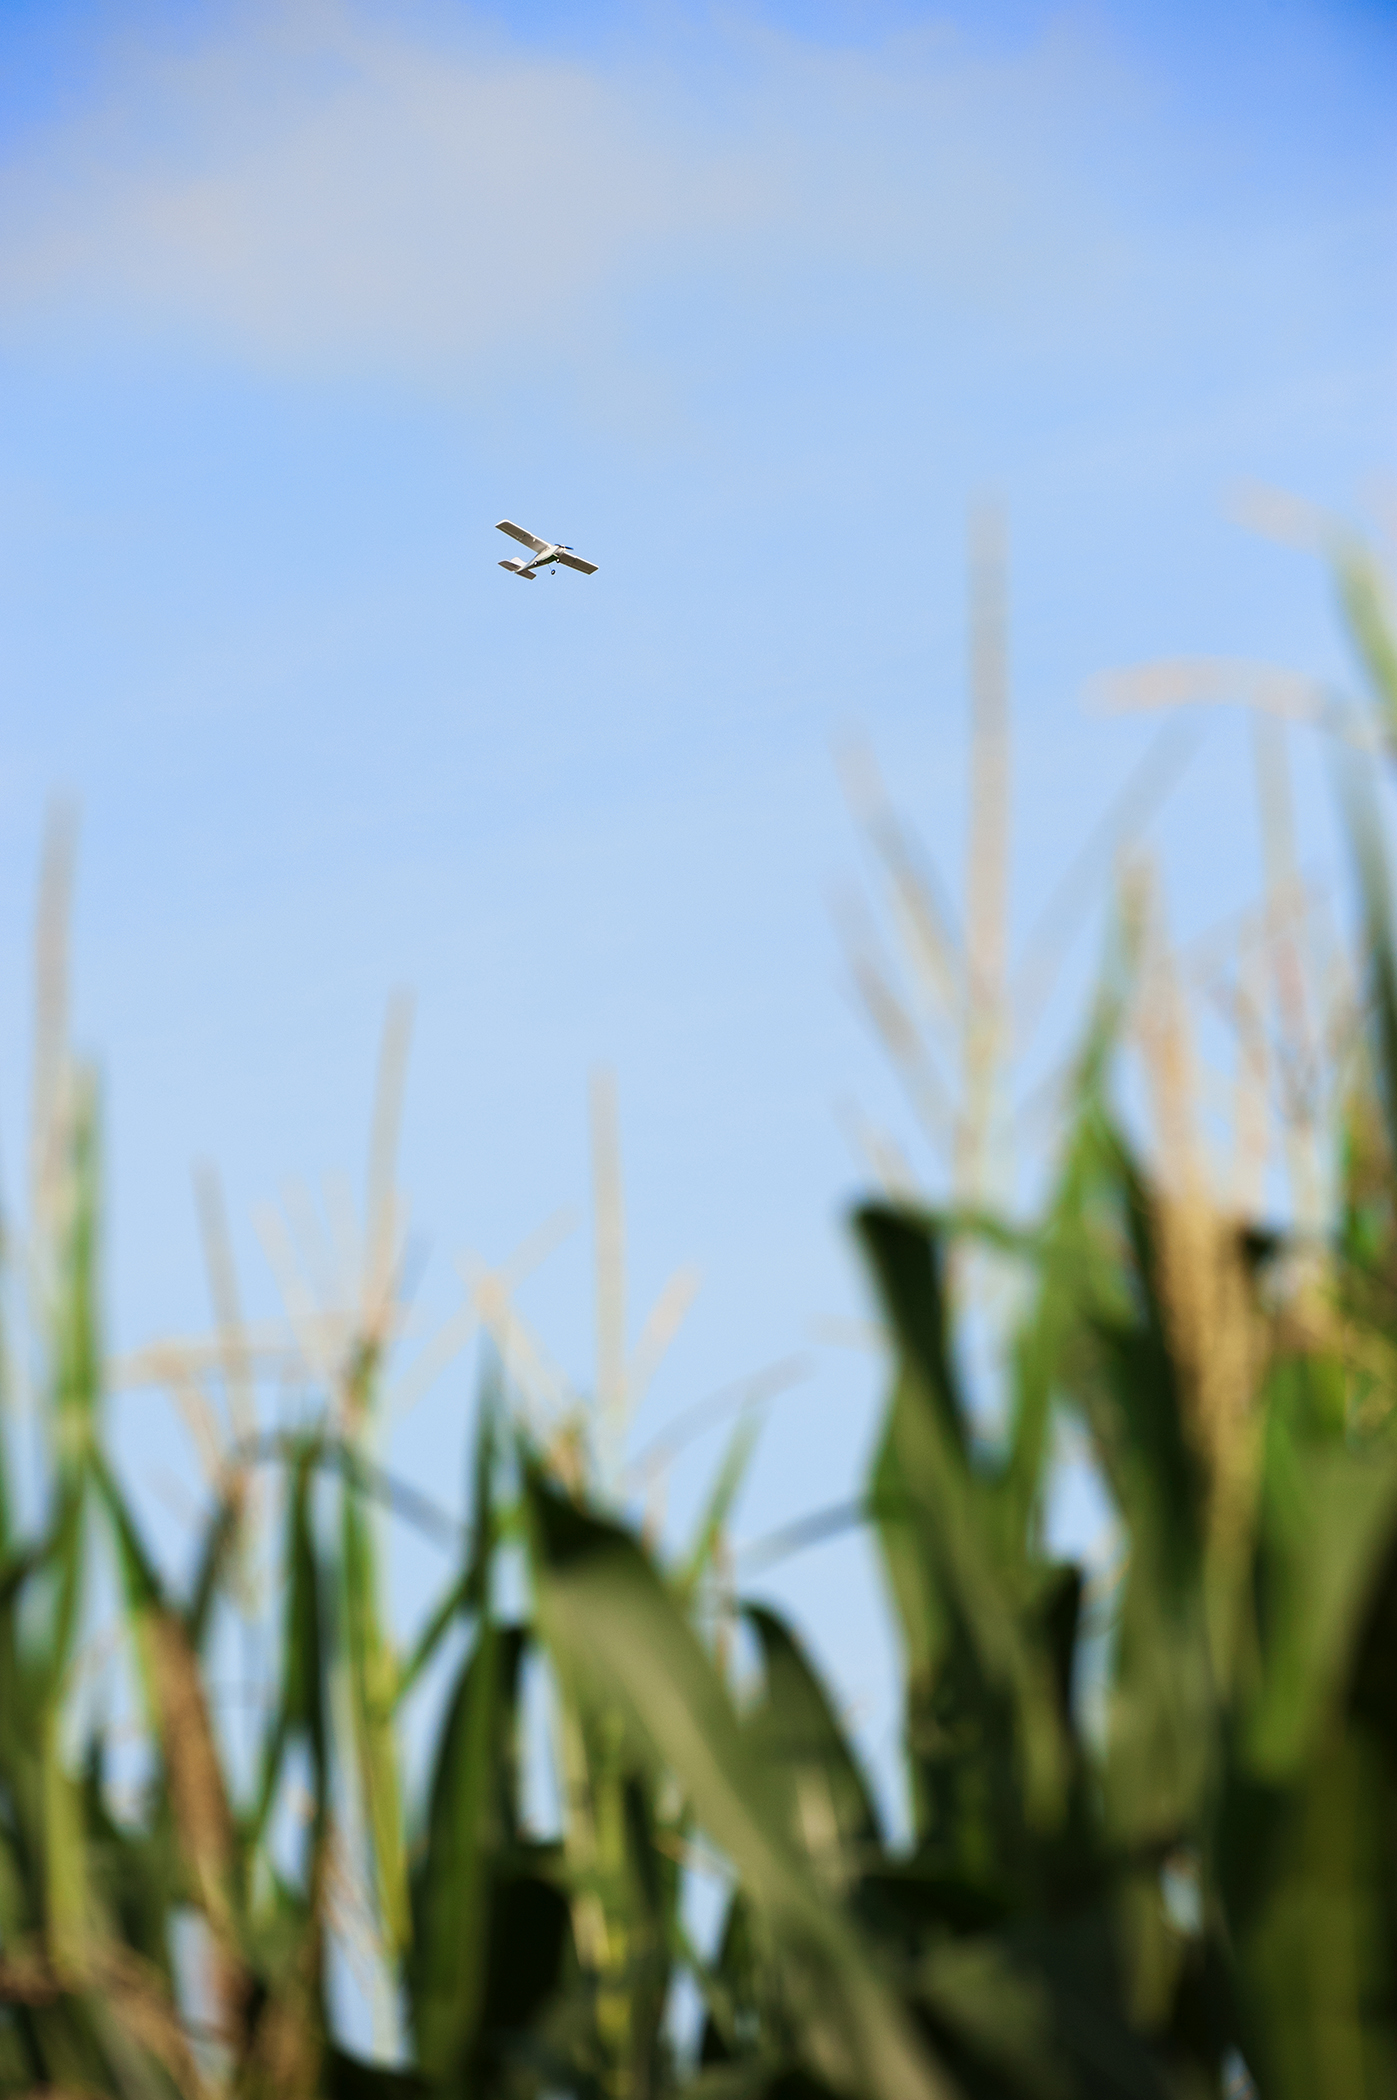 A fixed-wing unmanned aerial vehicle flies above a research plot of corn at Mississippi State's R.R. Foil Plant Science Research Center. MSU's Geosystems Research Institute collaborates with university agronomists on several projects involving the use of unmanned aerial systems in precision agriculture.